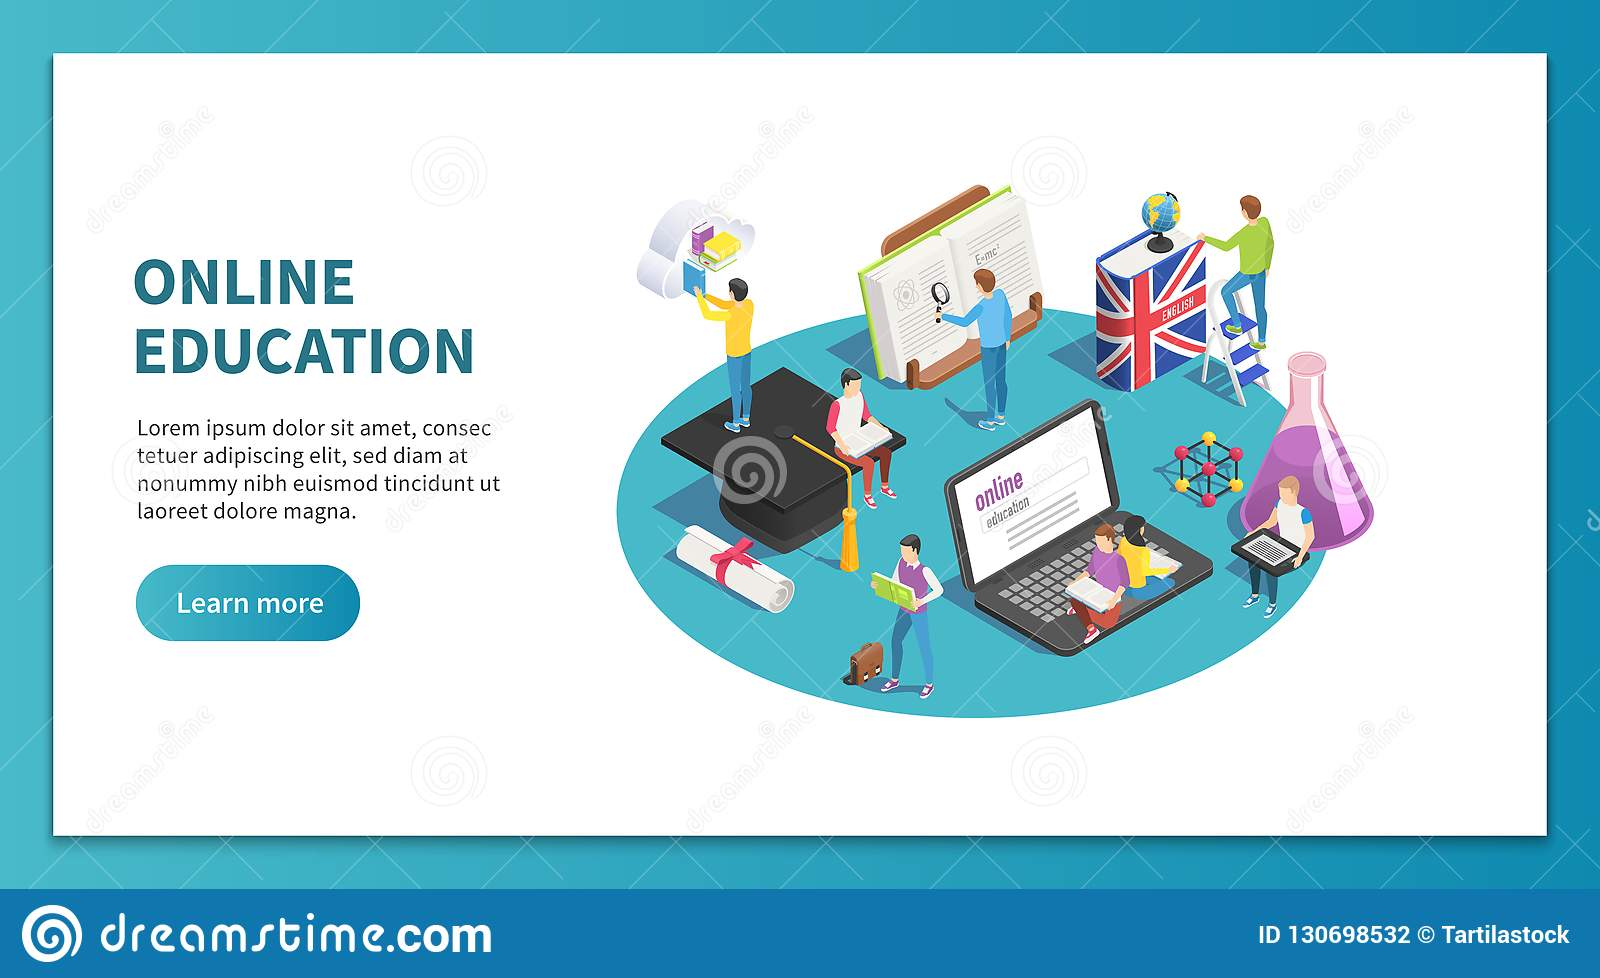 Online education isometric concept. Internet studying and web course. Learning students website landing page vector